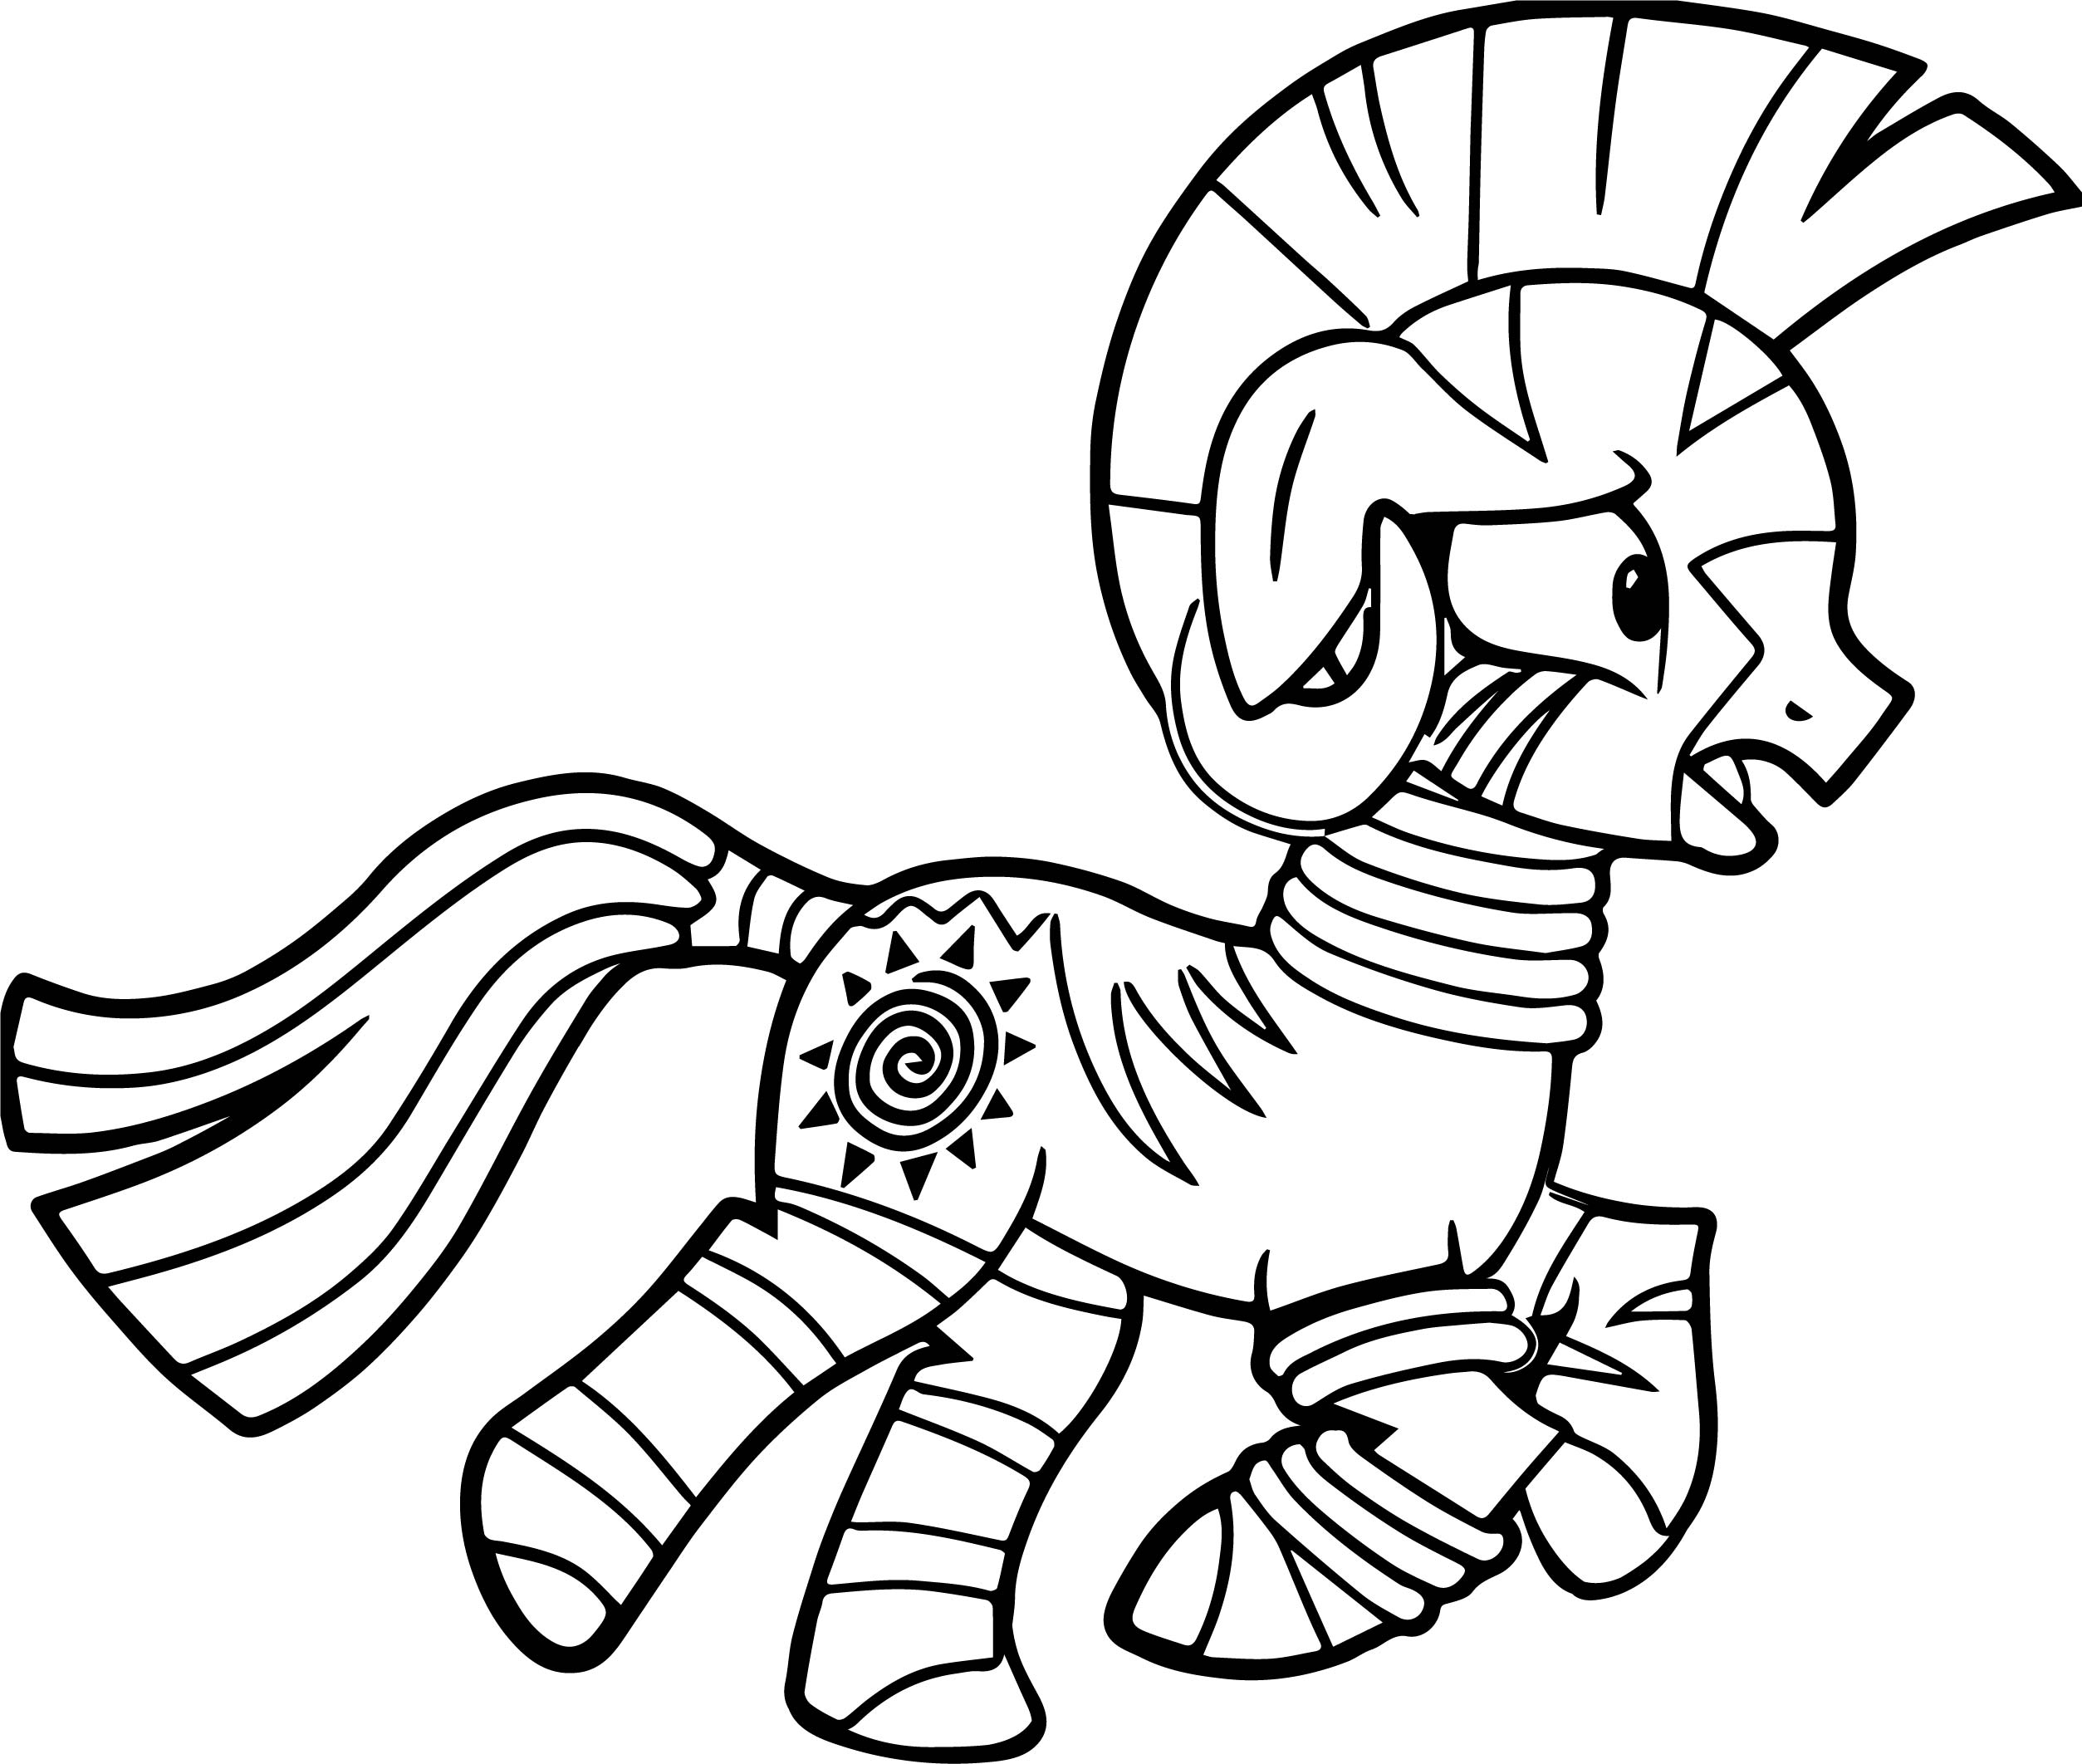 Zecora Flees Coloring Page